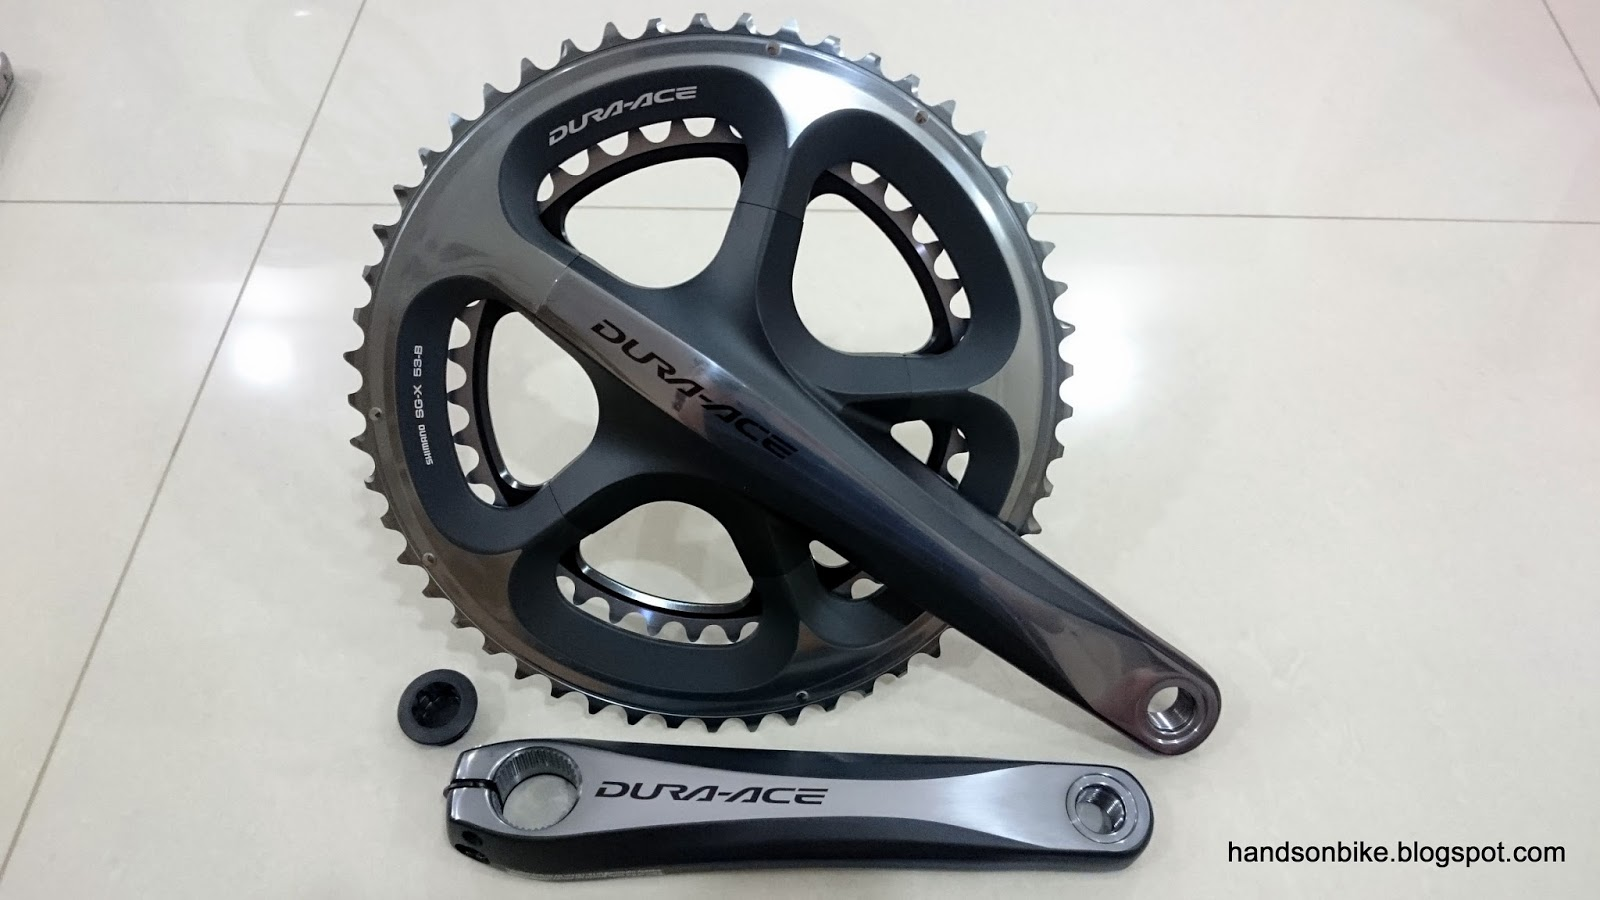 045176988d3 As for the Dura-Ace 9000 crankset, it is 50/34T, with 170mm crank arm  length. As such, the total weight comparison is not the most accurate as  the ...